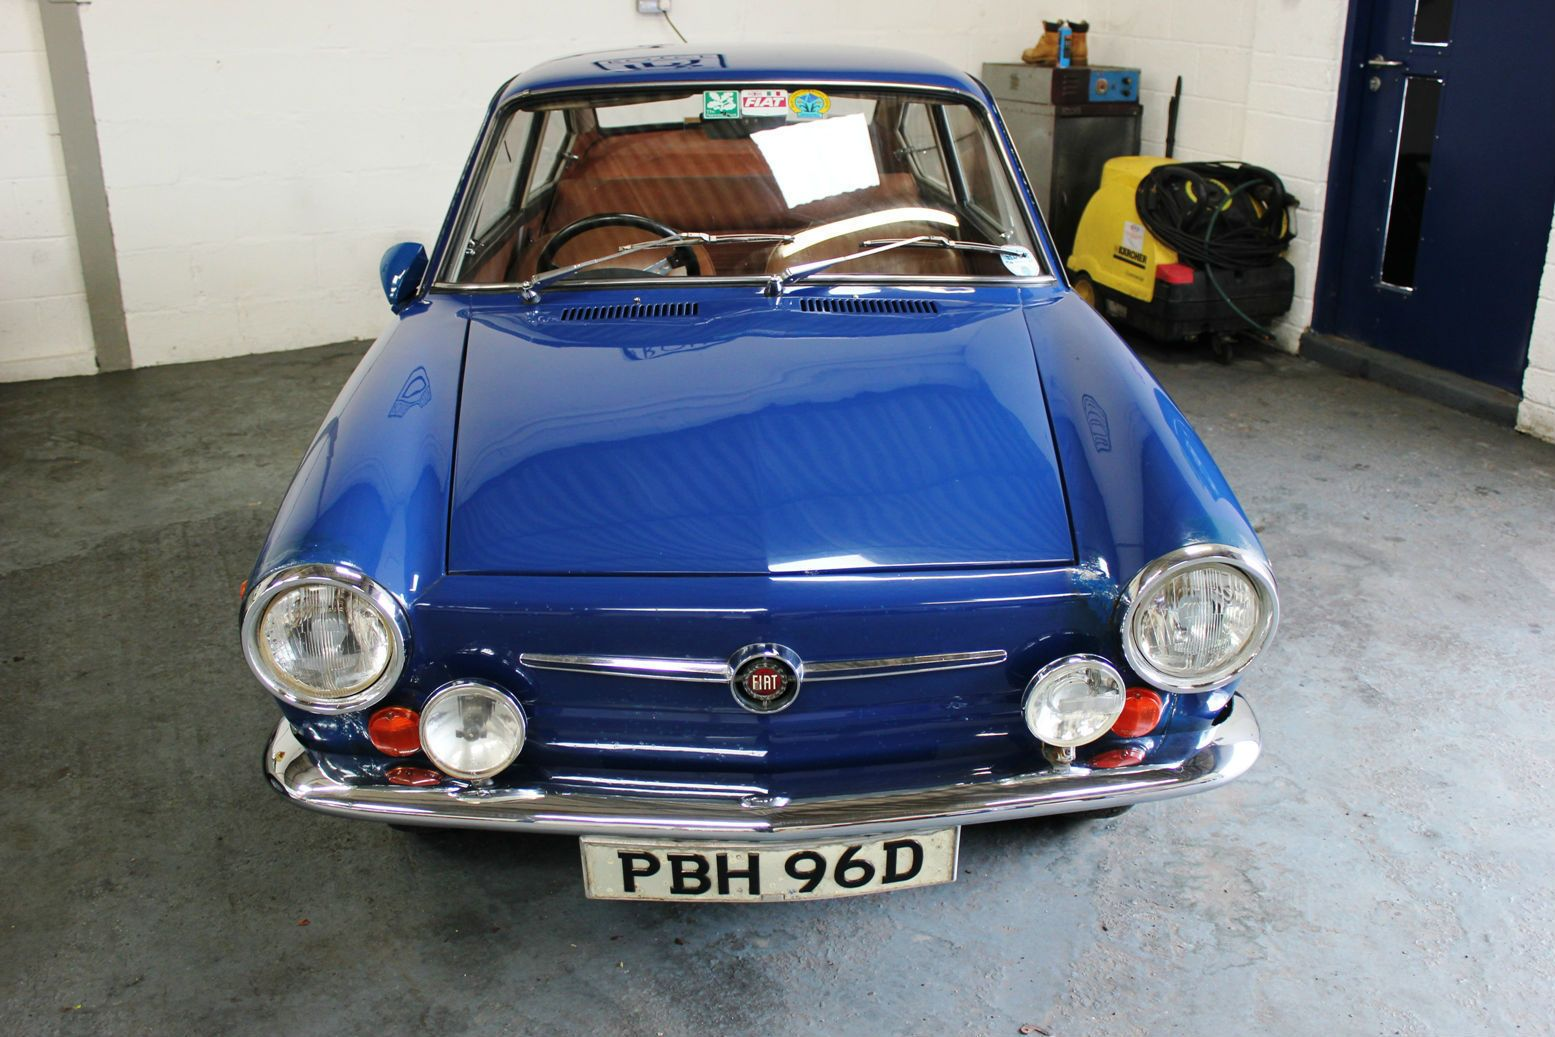 Fiat 850 Sport Coupe My Love Affair With The Fiat Ended When I